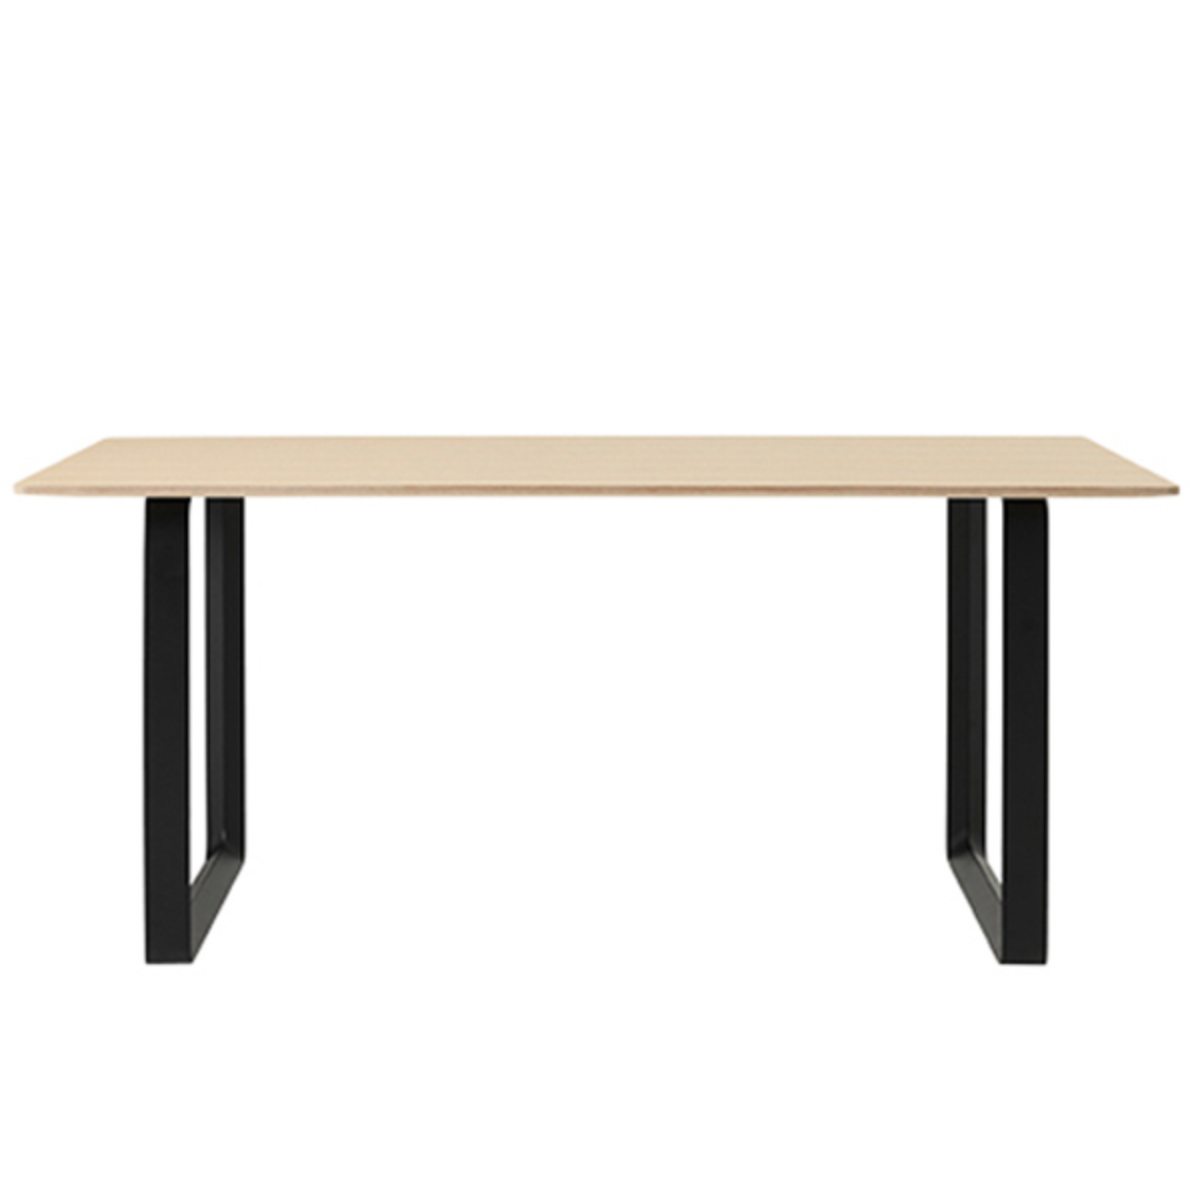 Muuto 70/70 table 170 * 85, oak top,  black leg